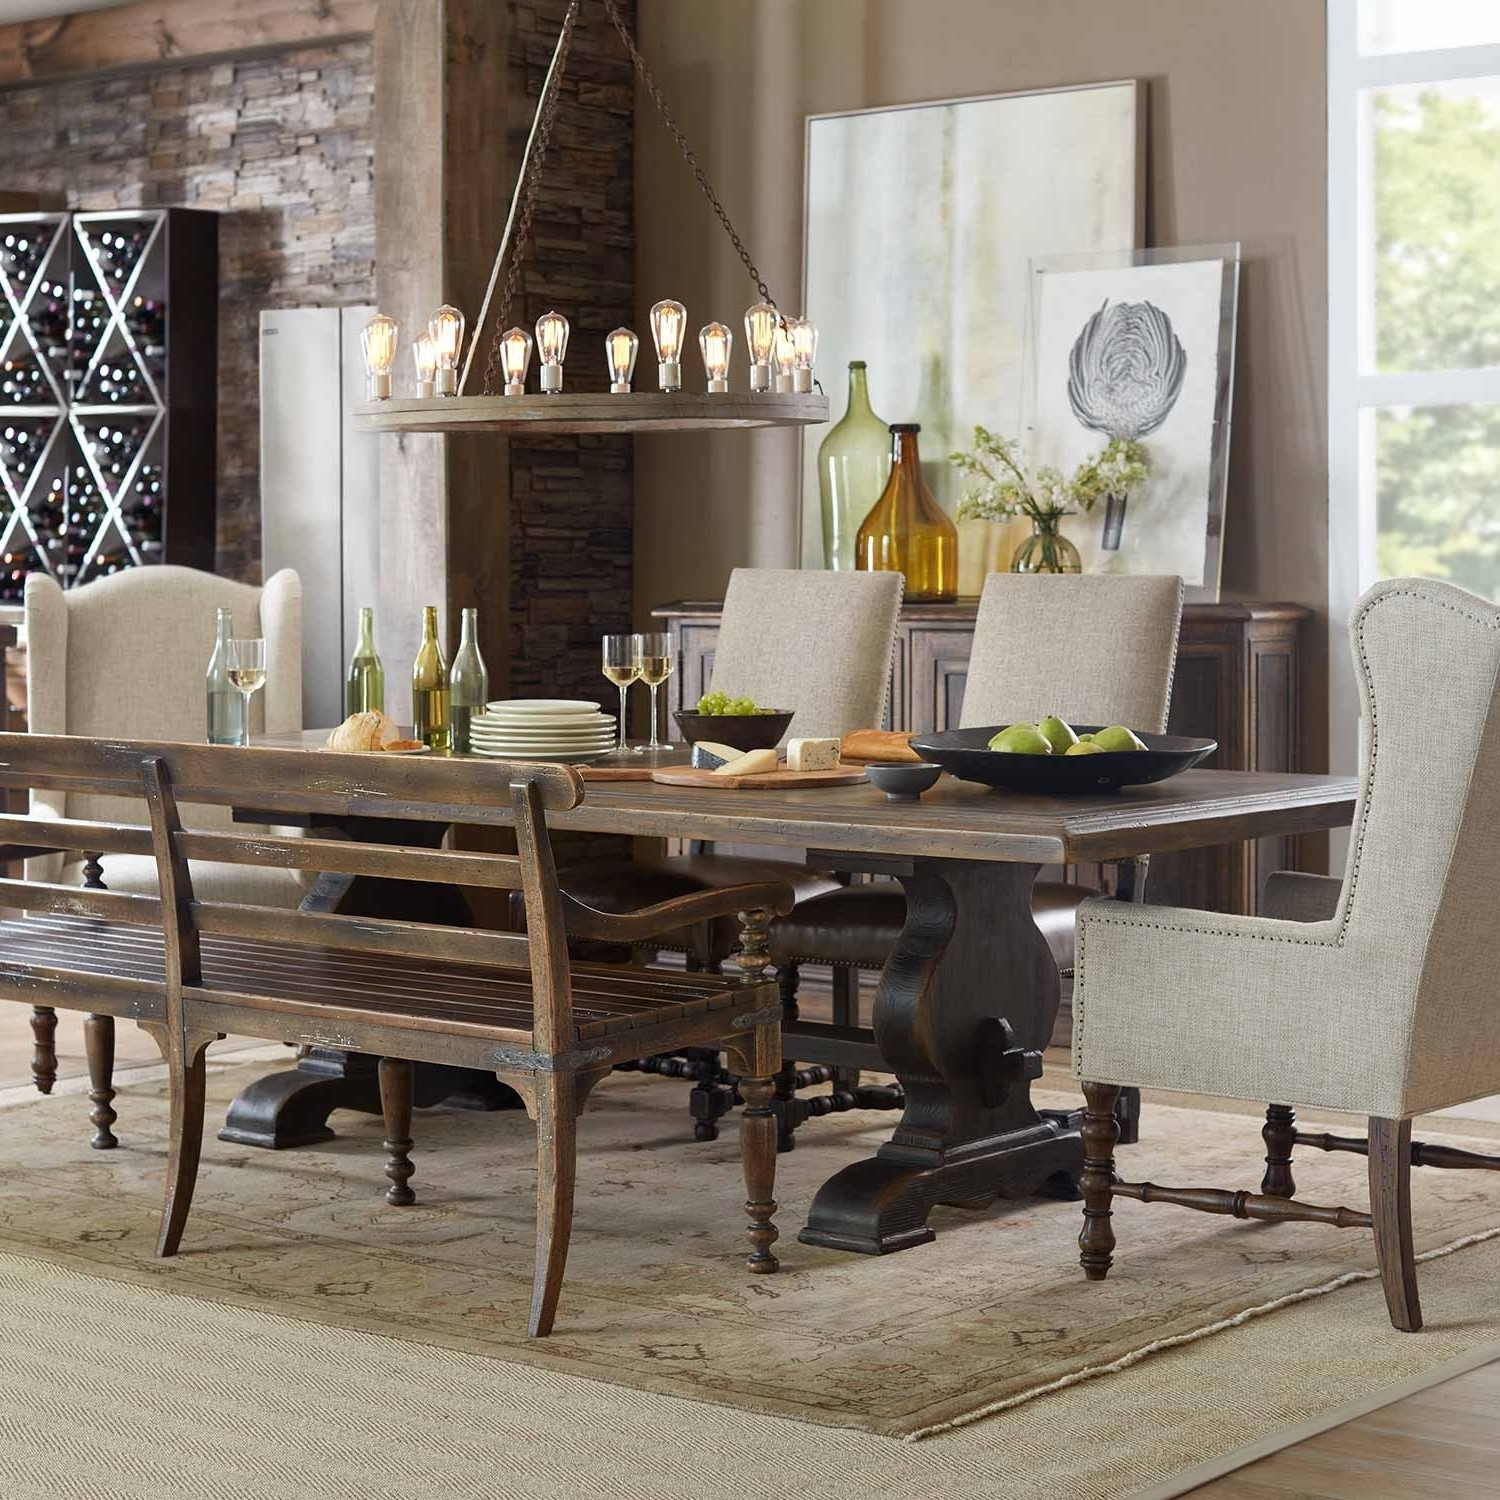 Most Current Hill Country Bandera Wood Rectangular Trestle Dining Table In Dark With Regard To Dark Wood Dining Tables (View 18 of 25)